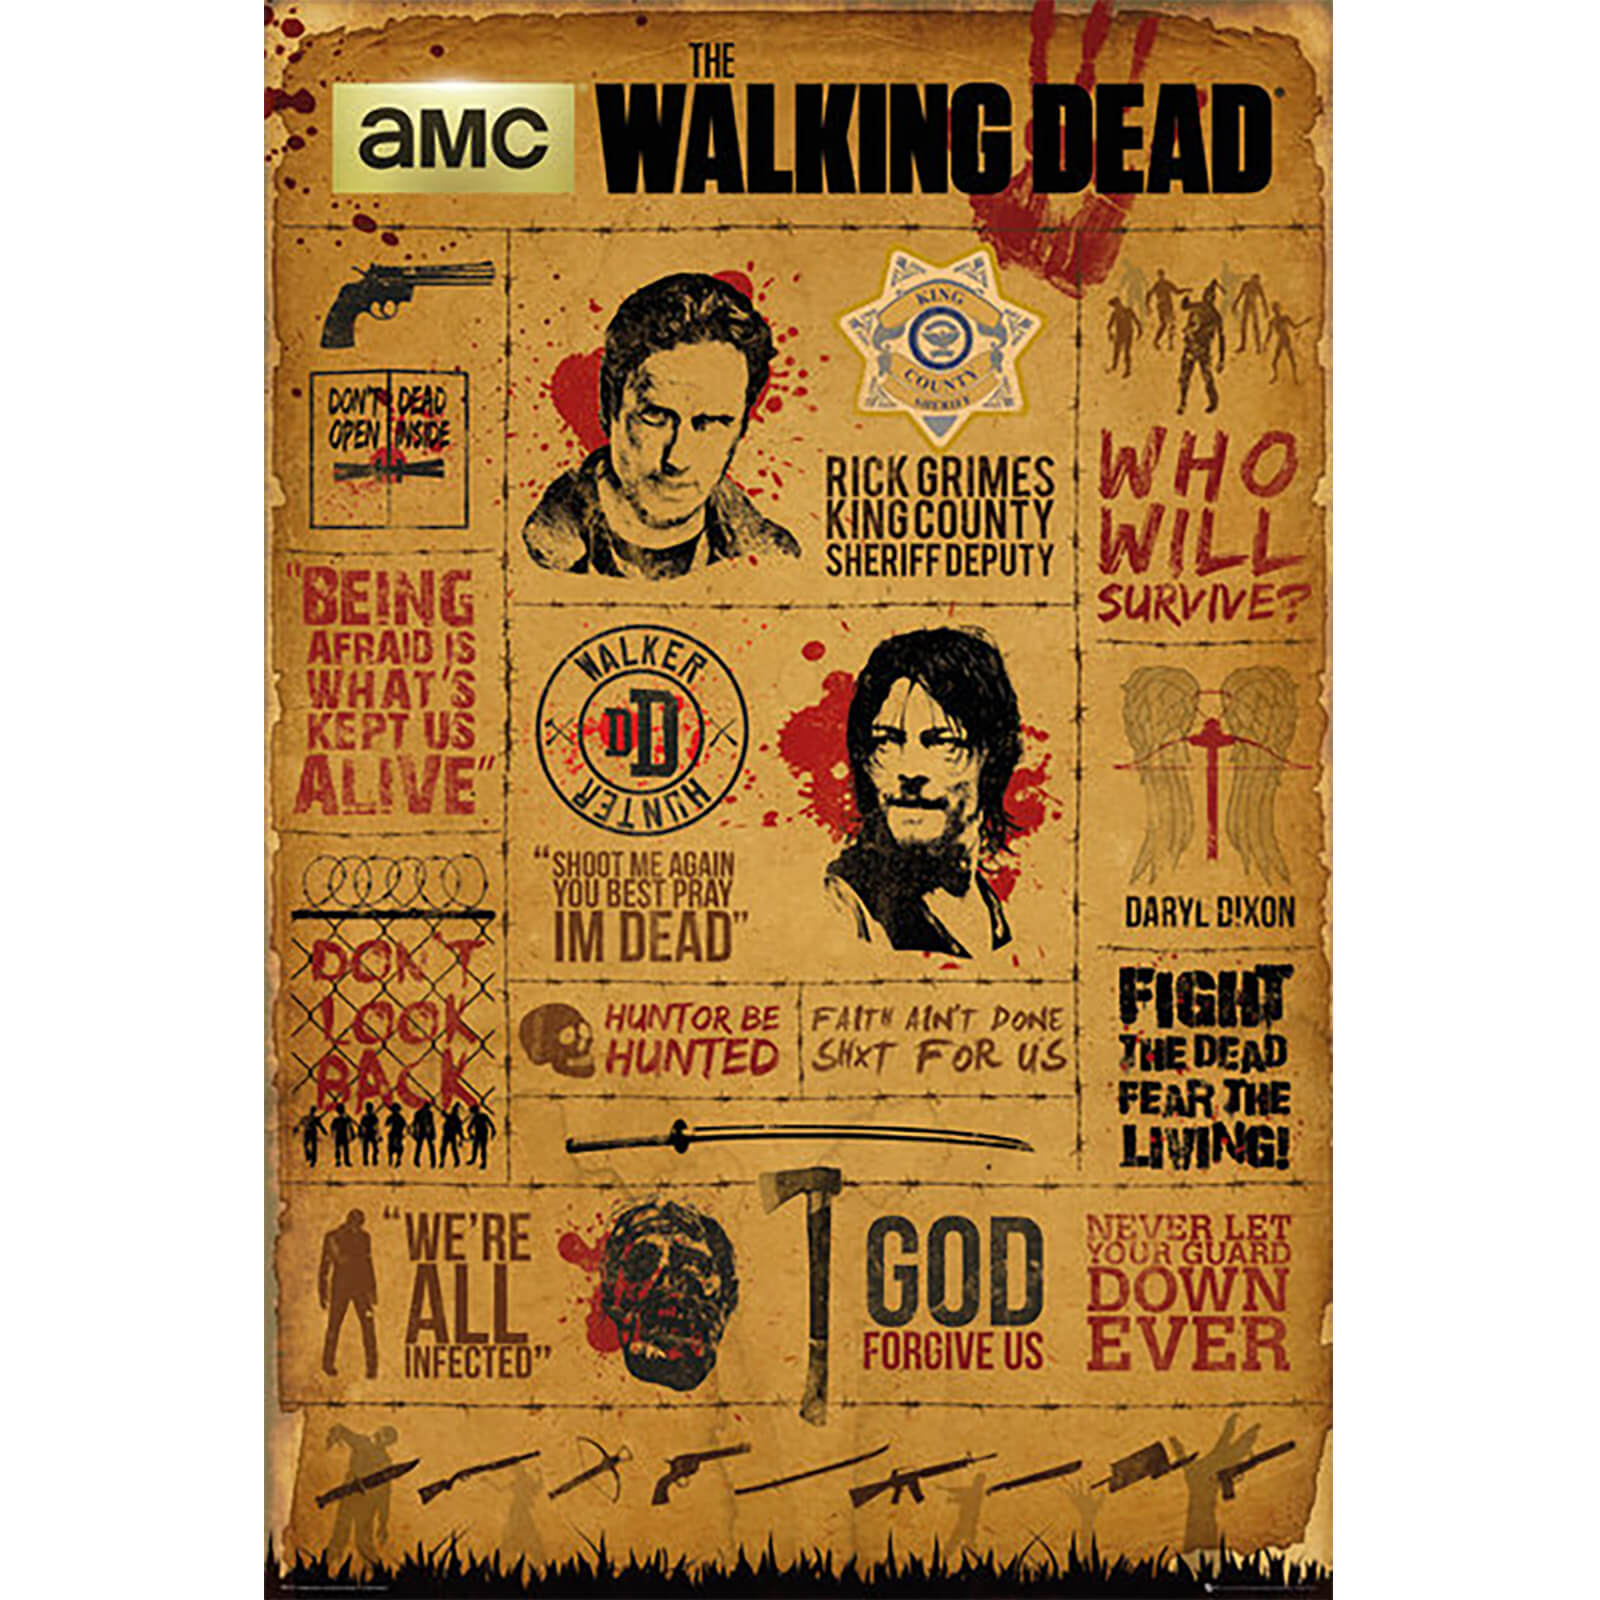 The Walking Dead Infographic - 61 x 91.5cm Maxi Poster